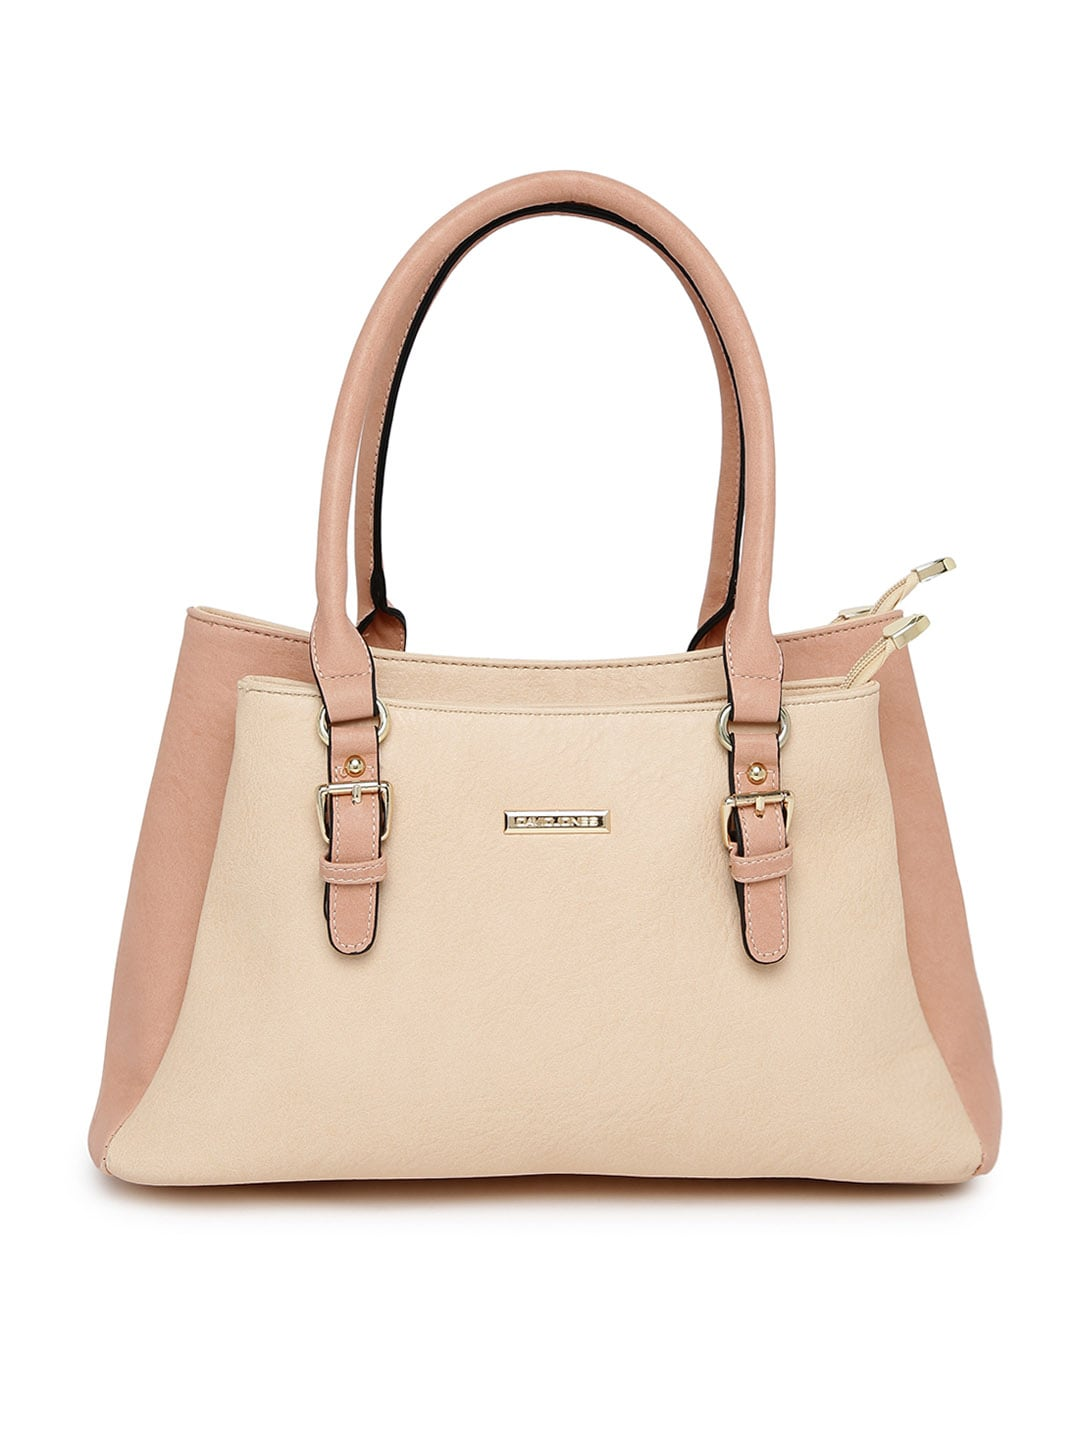 05af66d8c3 David jones dj374-beige Beige And Dusty Pink Handbag - Best Price ...